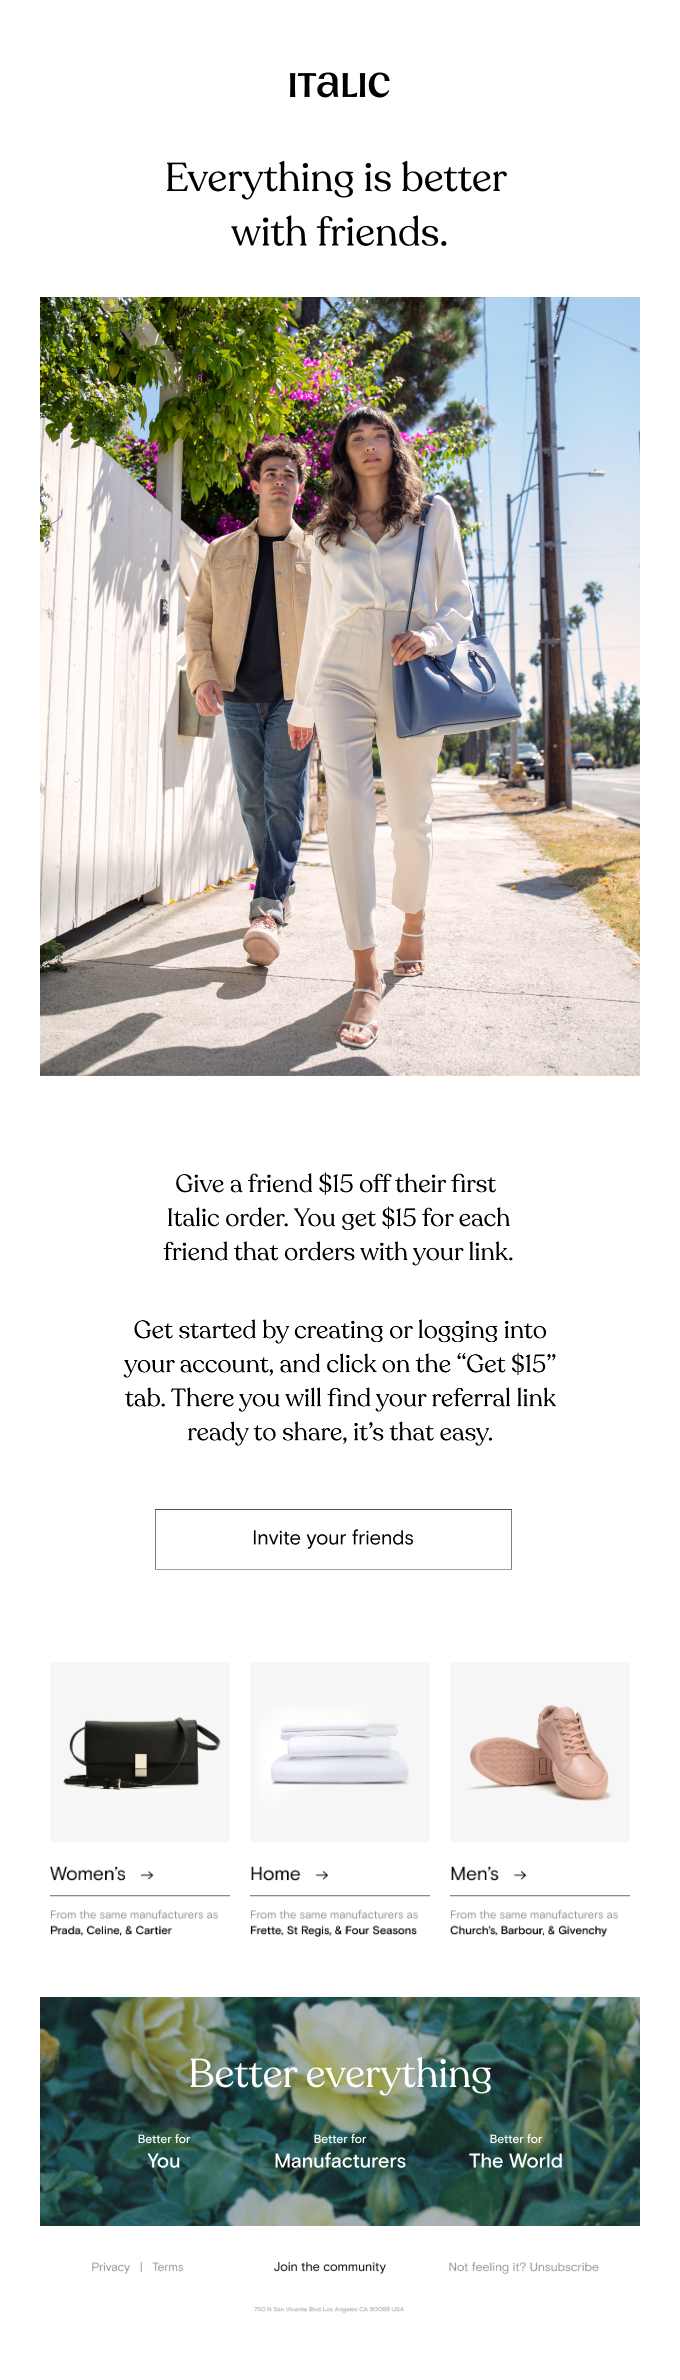 Be a good friend, get $15